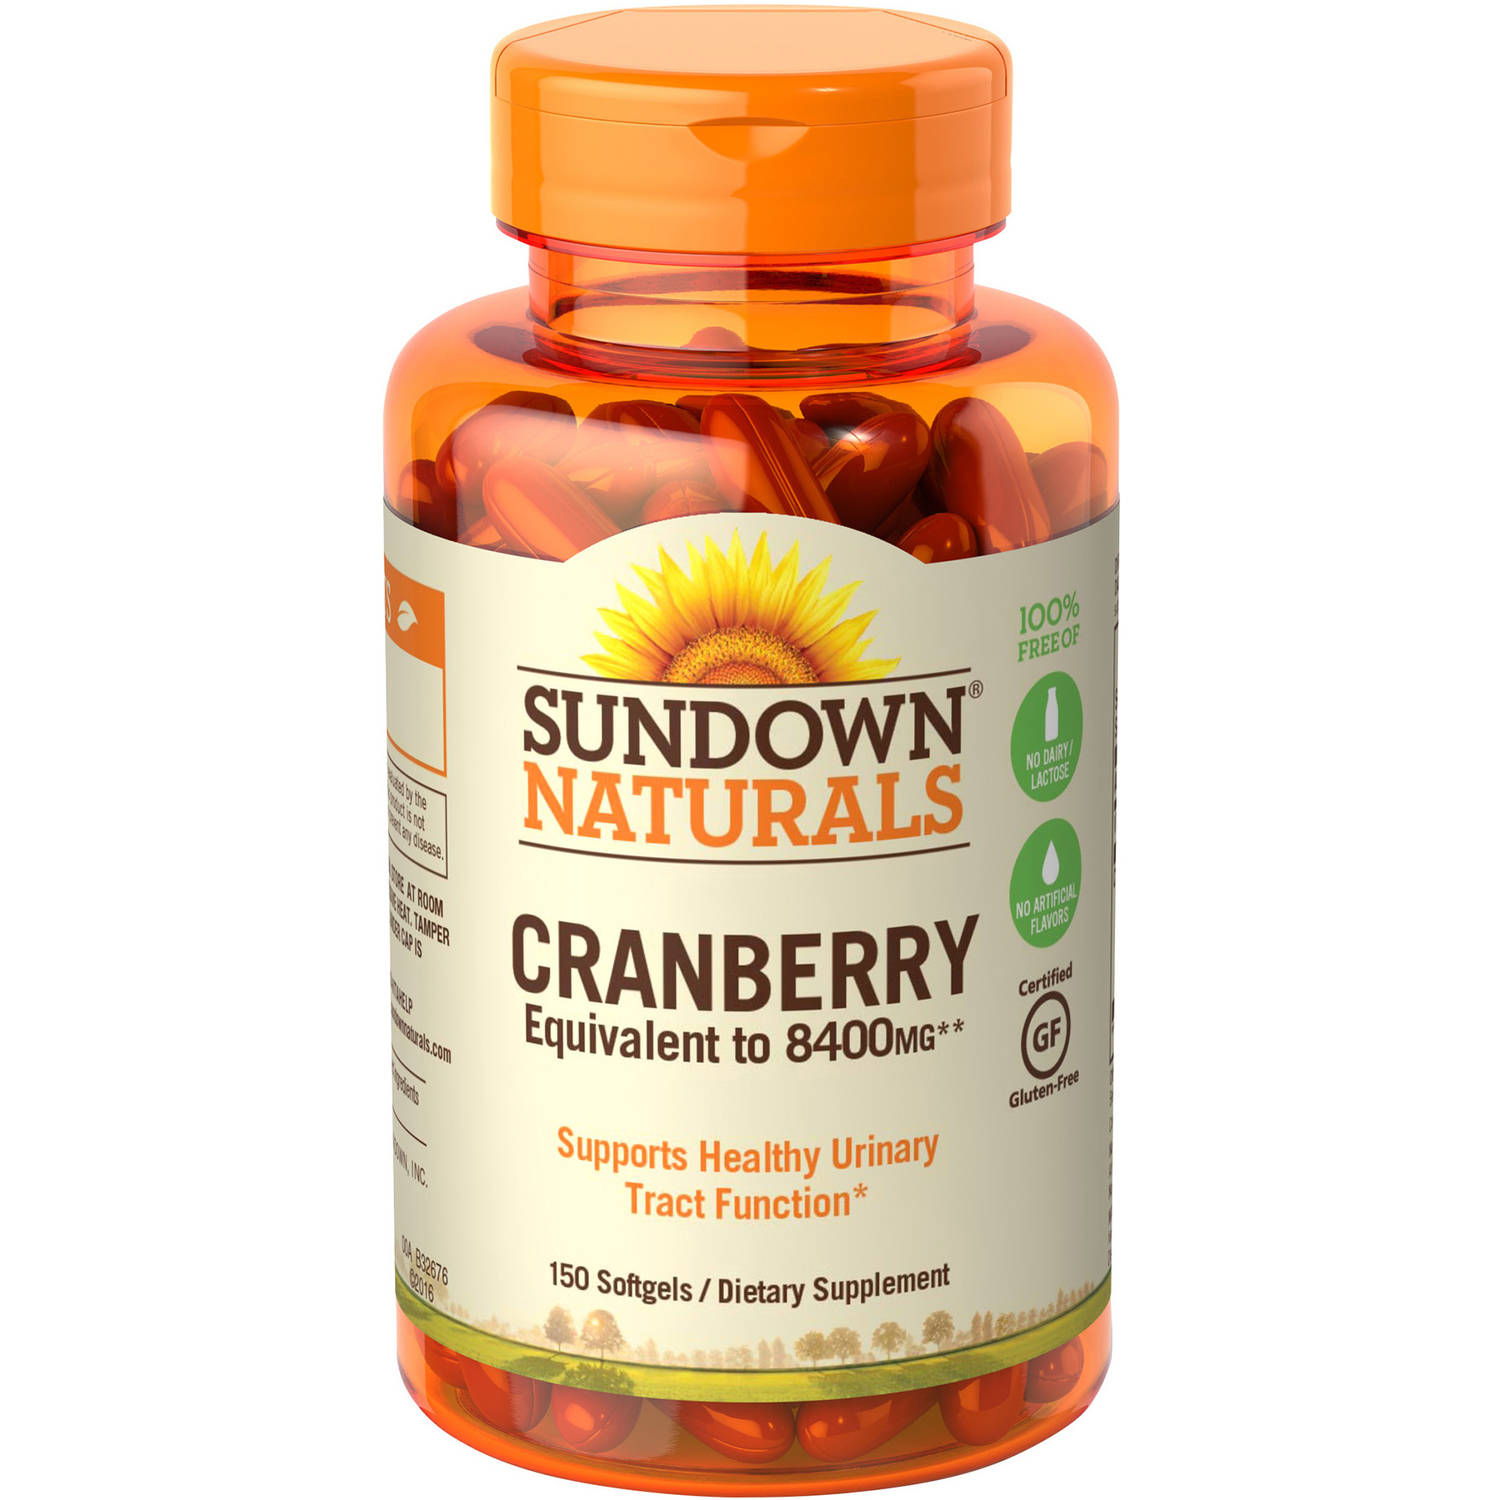 Sundown Naturals Super Cranberry Plus Vitamin D3 Herbal Supplement Softgels, 150 count